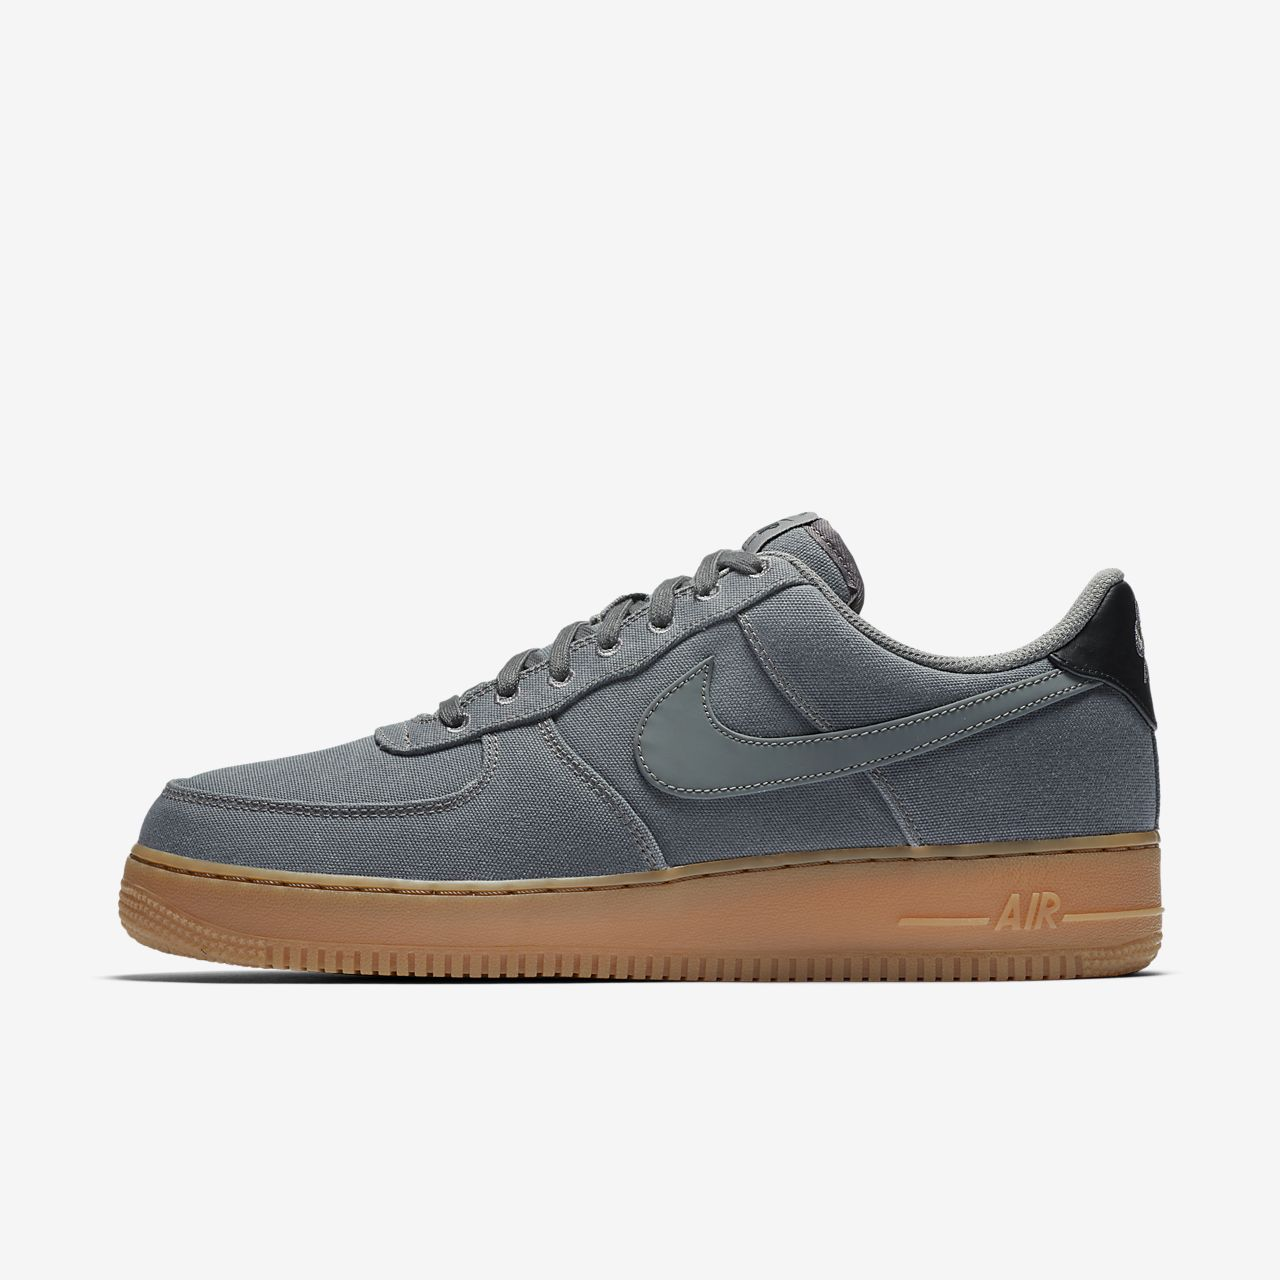 best service 846b2 975f9 ... Nike Air Force 1  07 LV8 Style Men s Shoe